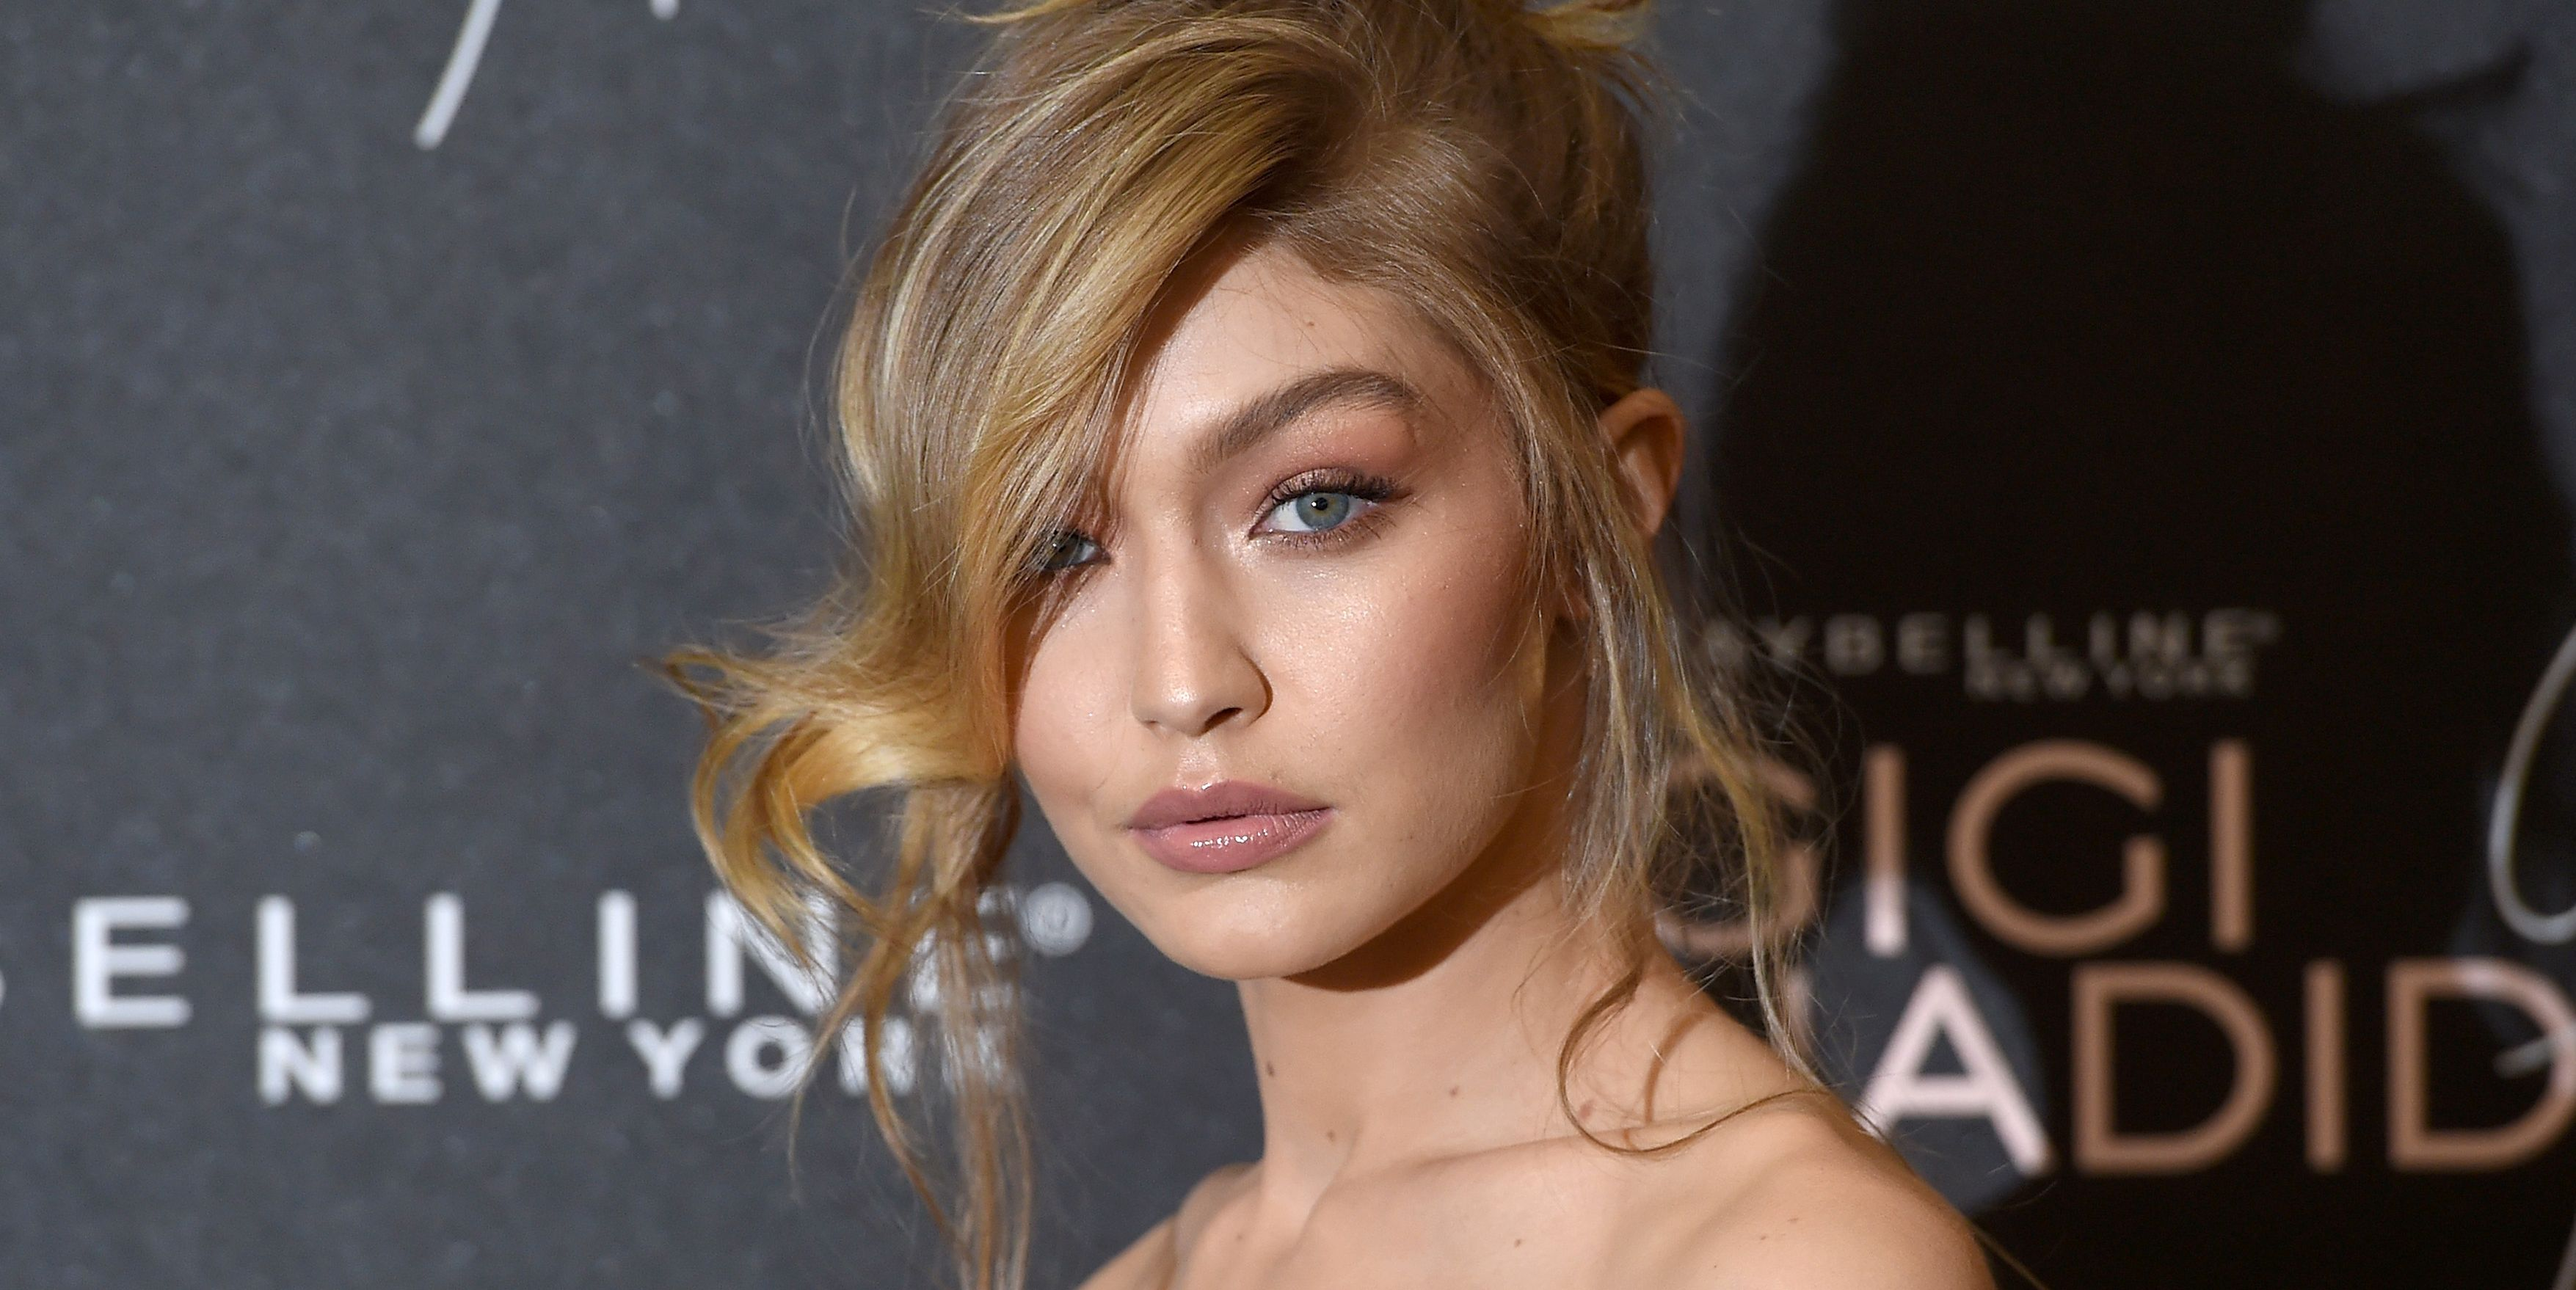 gigi hadid maybelline launch